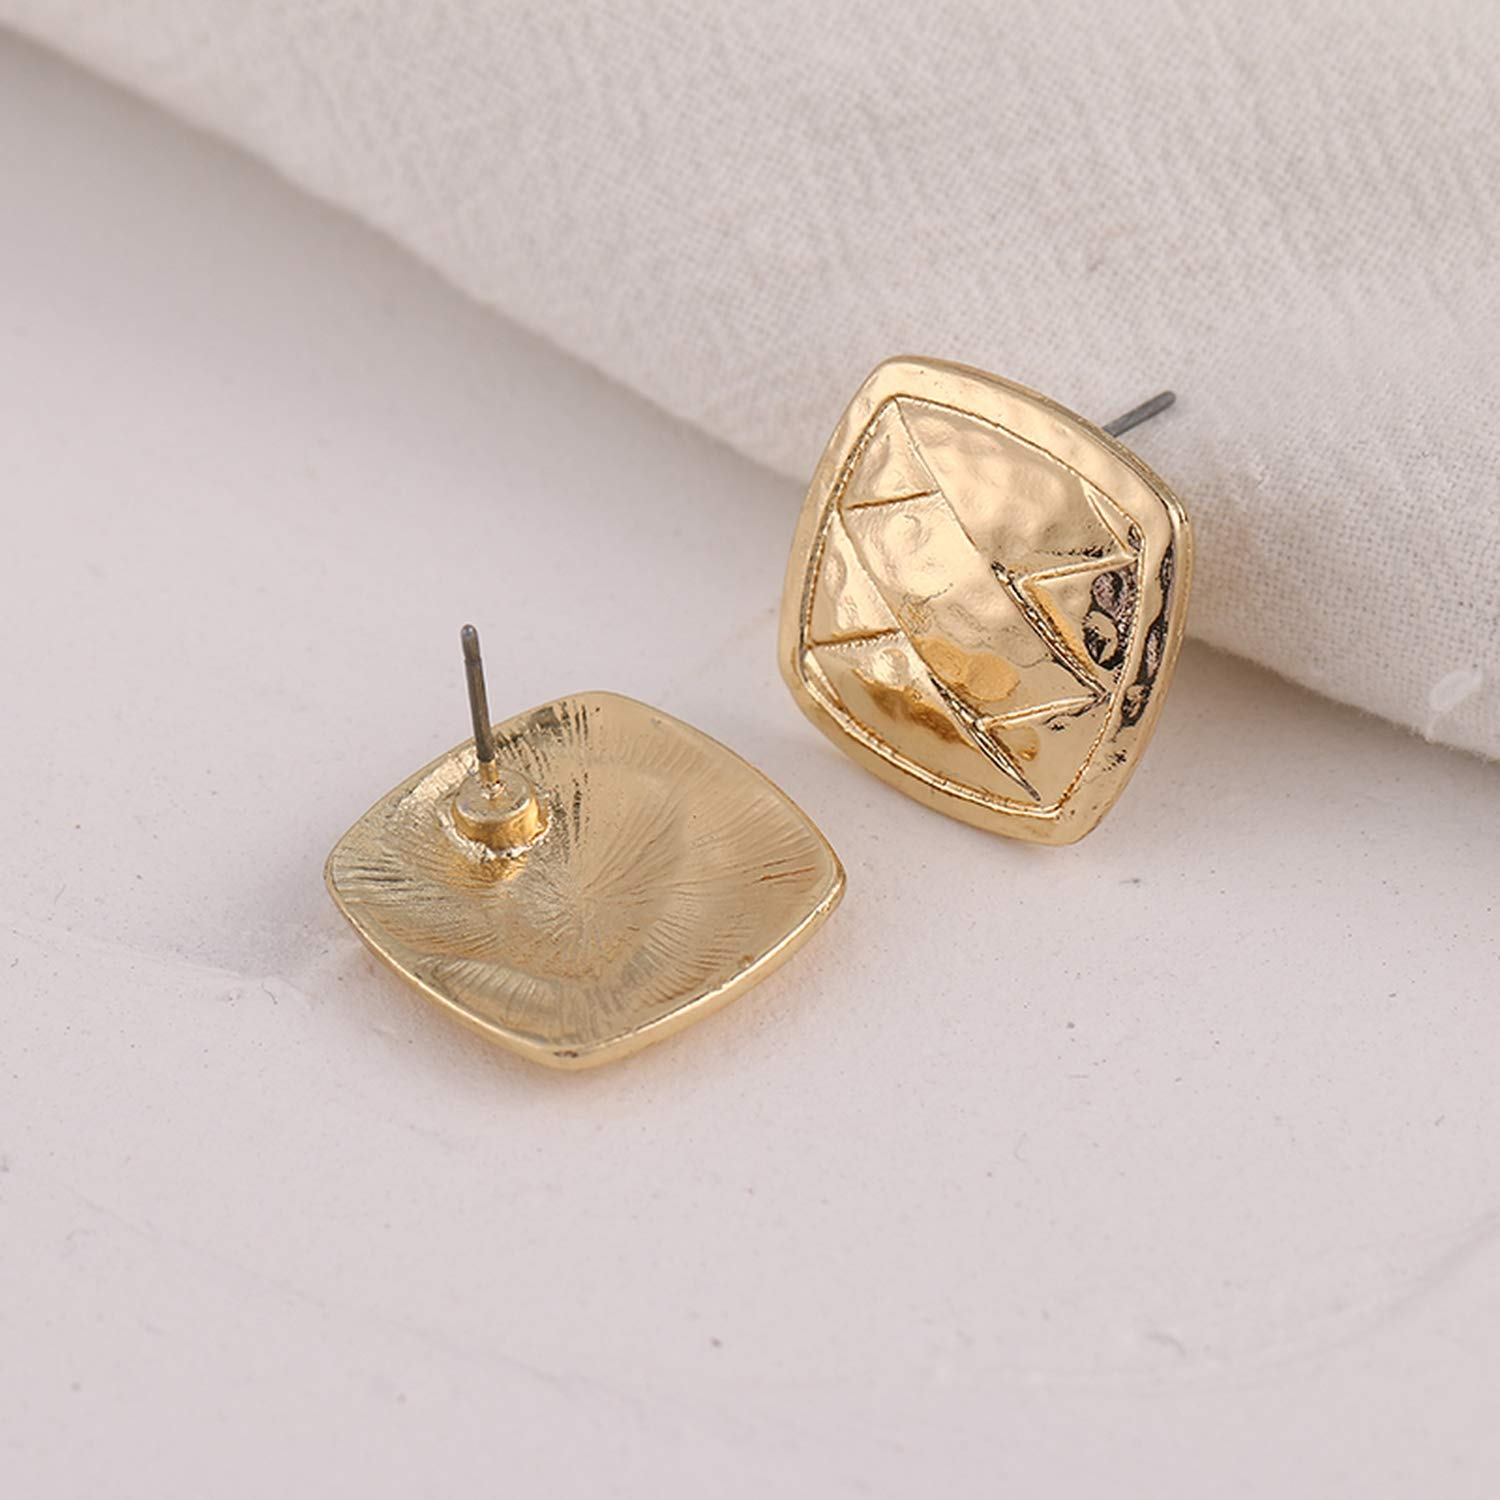 YMYW Fashion Korean Brand Minimalist Square Geometric Stud Earrings Metal Gold Silver Cheap Earrings For Female Party Jewelry